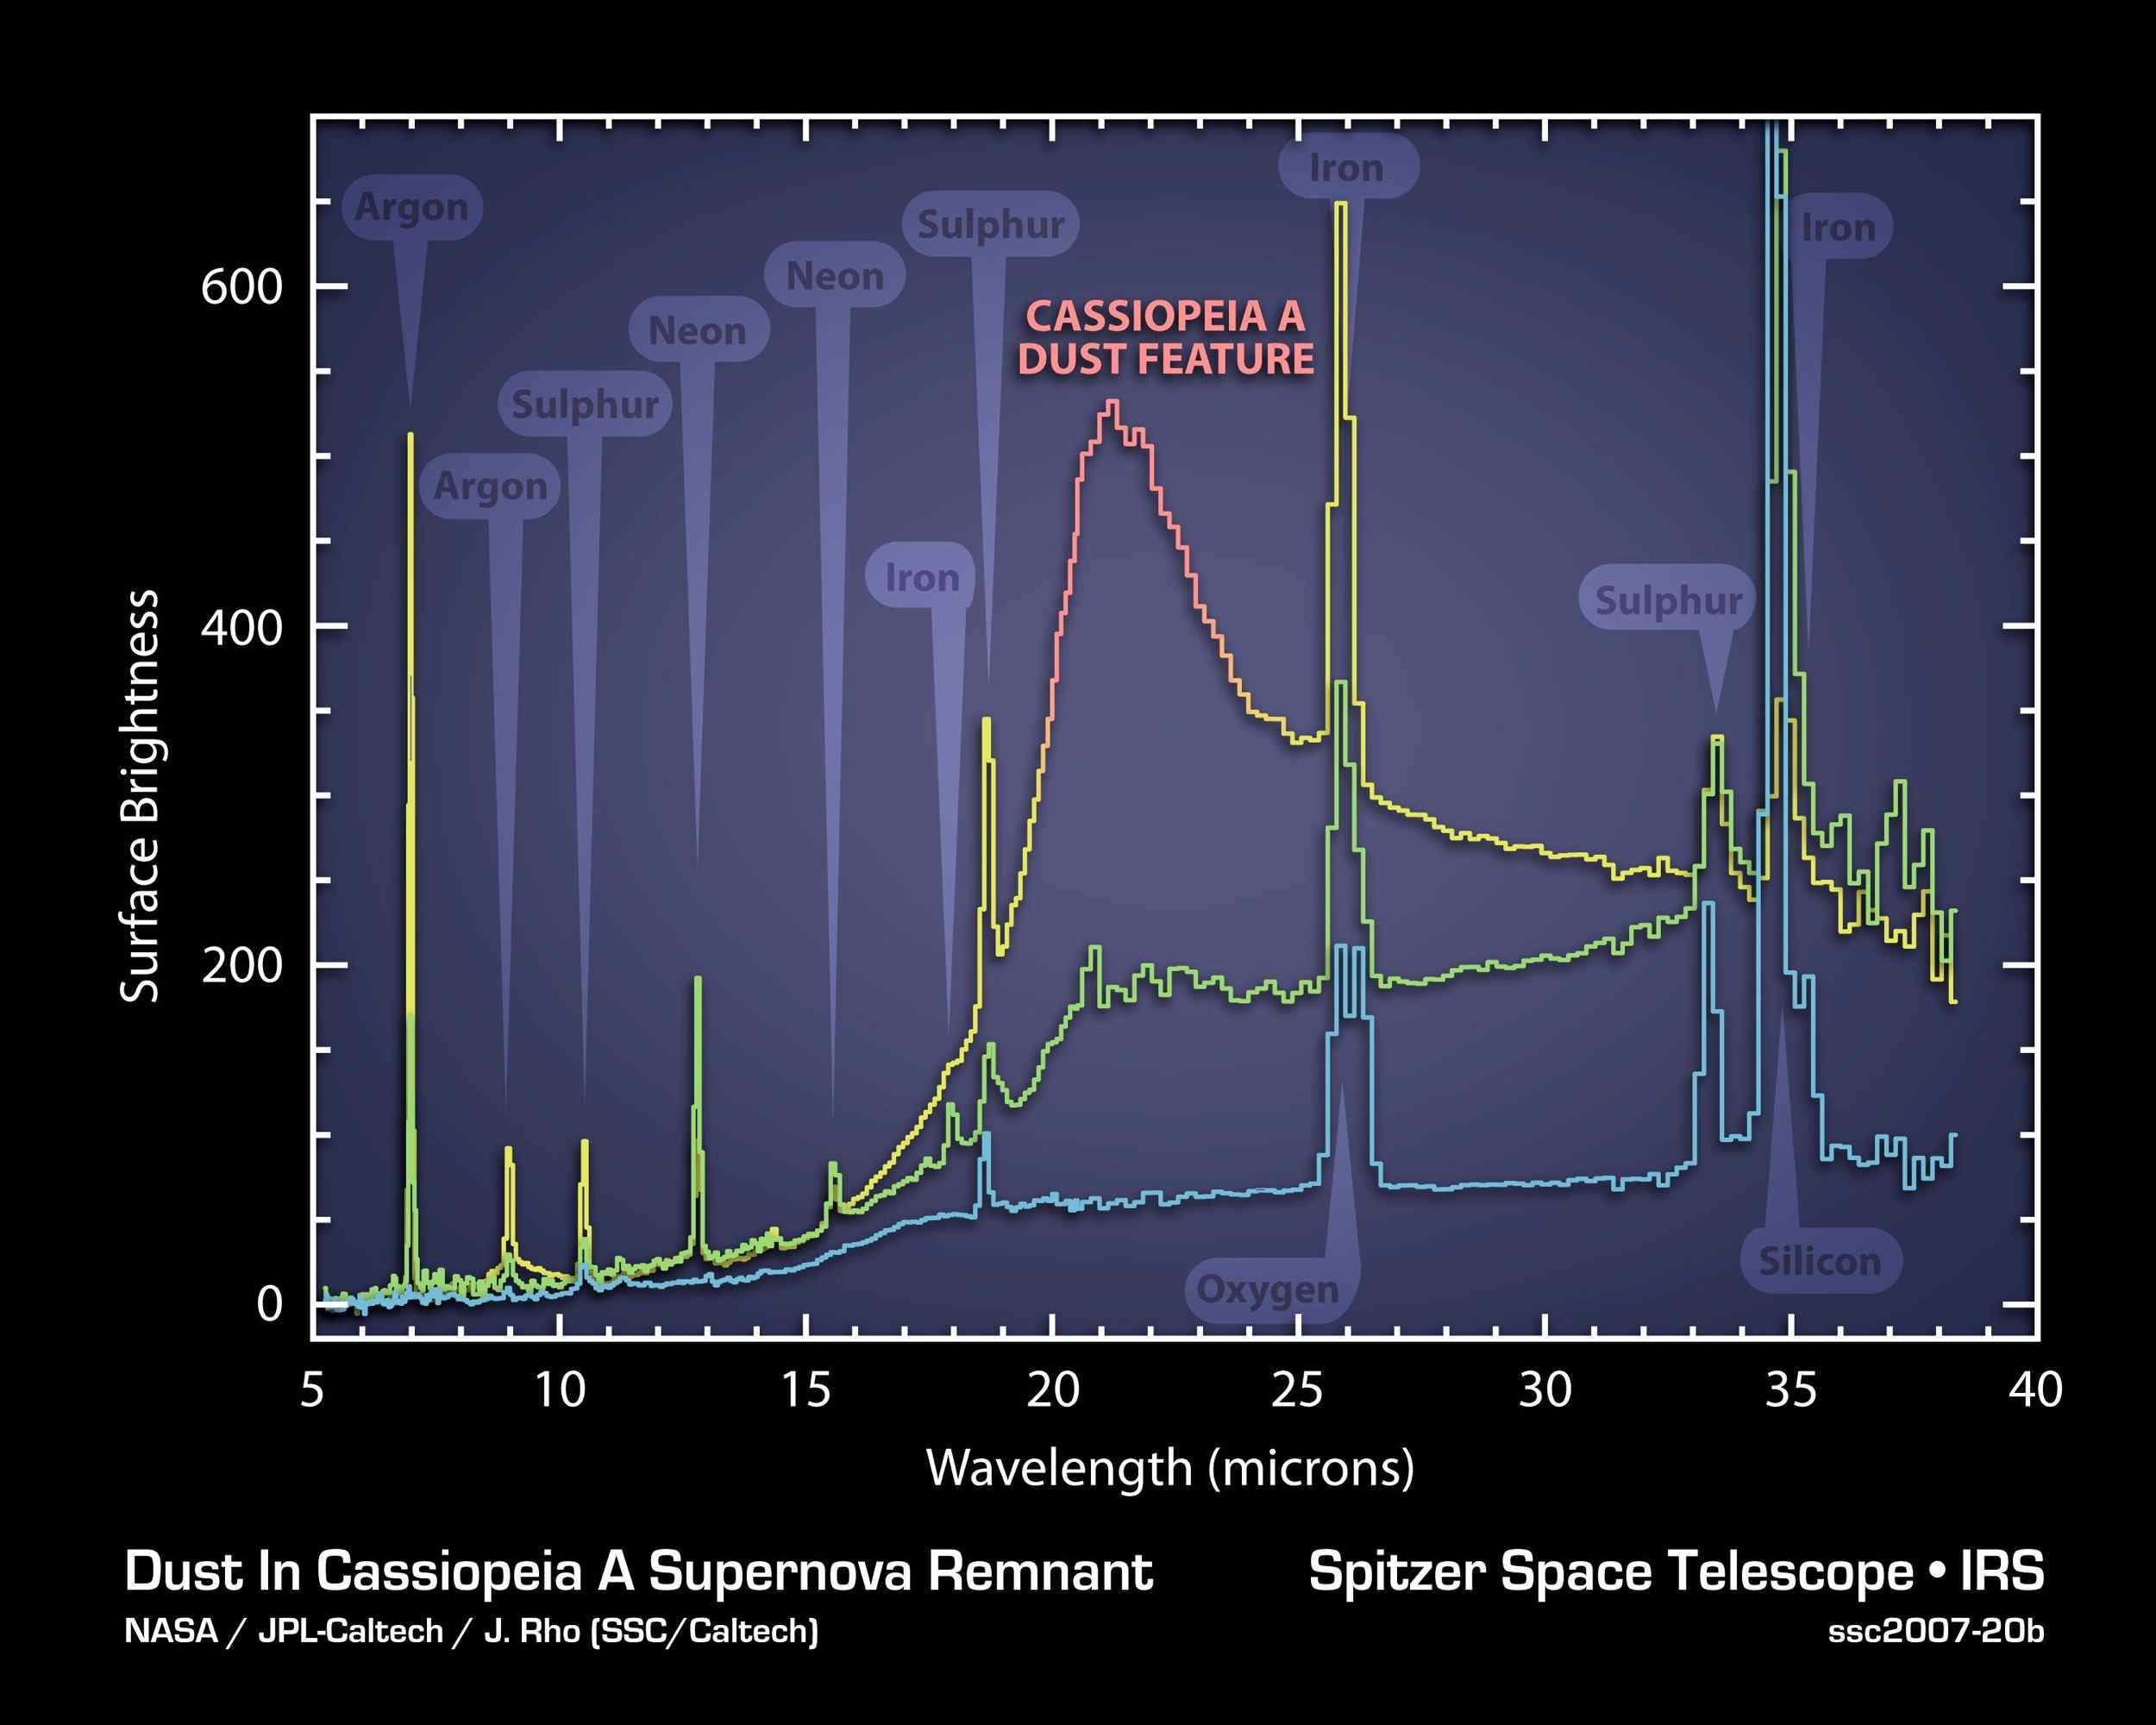 The elements and molecules that flew out of the Cassiopeia A star when it exploded about 300 years ago can be seen clearly for the first time in this plot of data, called a spectrum, taken by NASA's Spitzer Space Telescope.